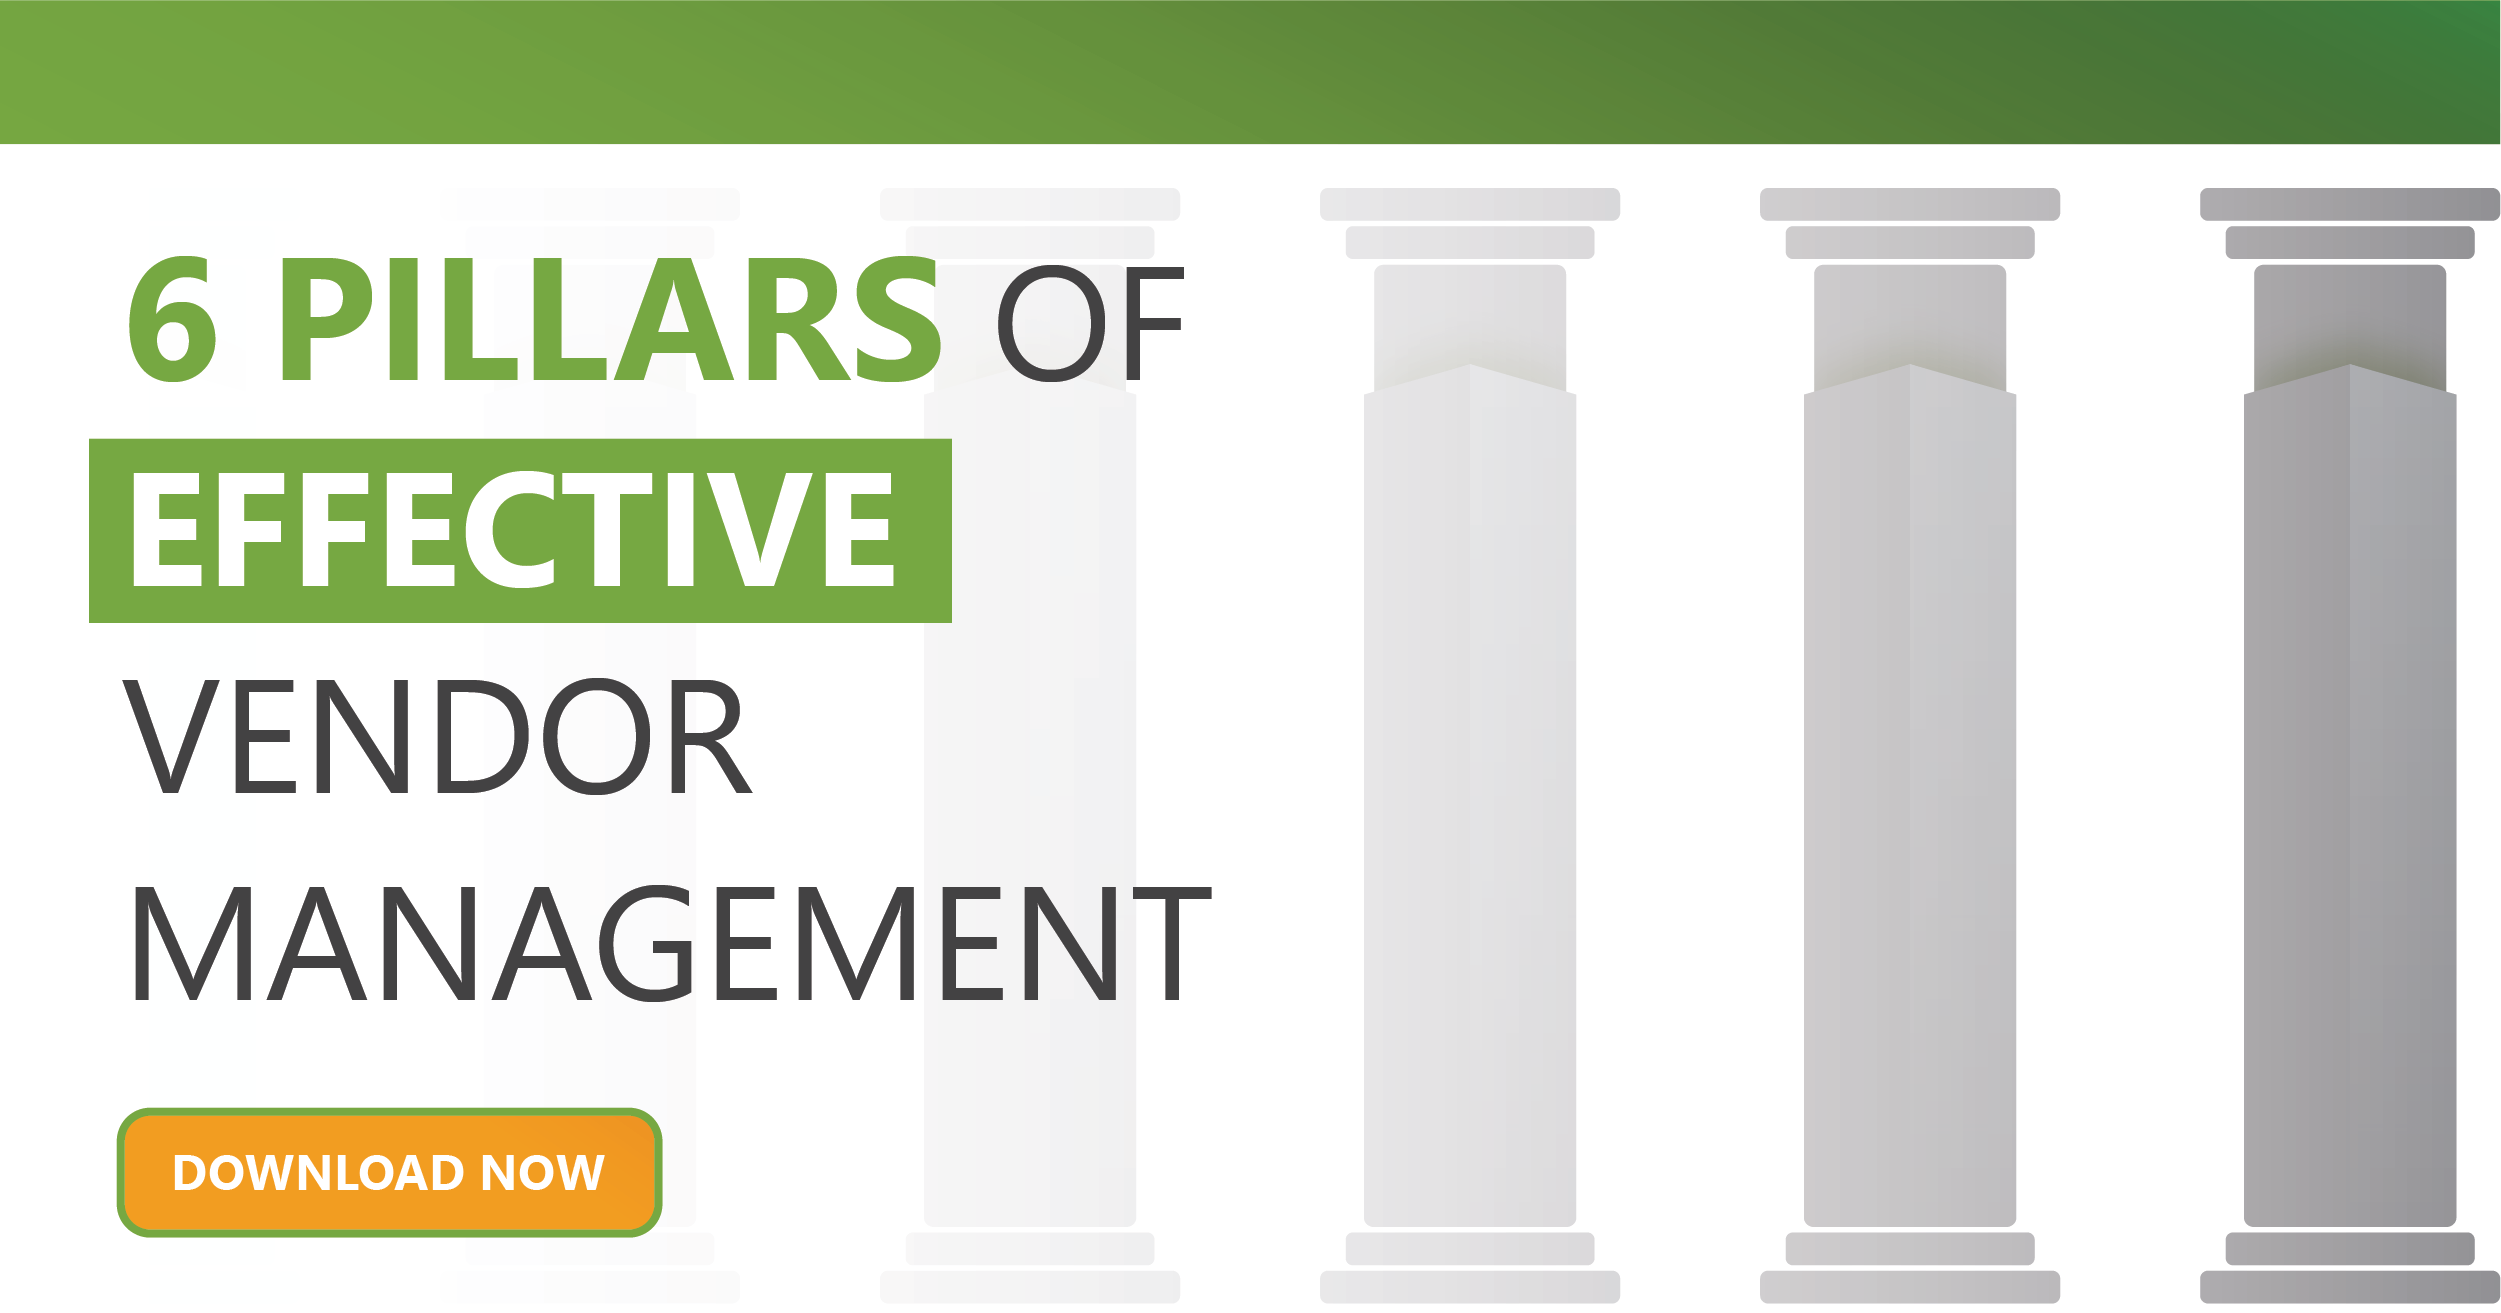 6 Pillars of Effective Vendor Management